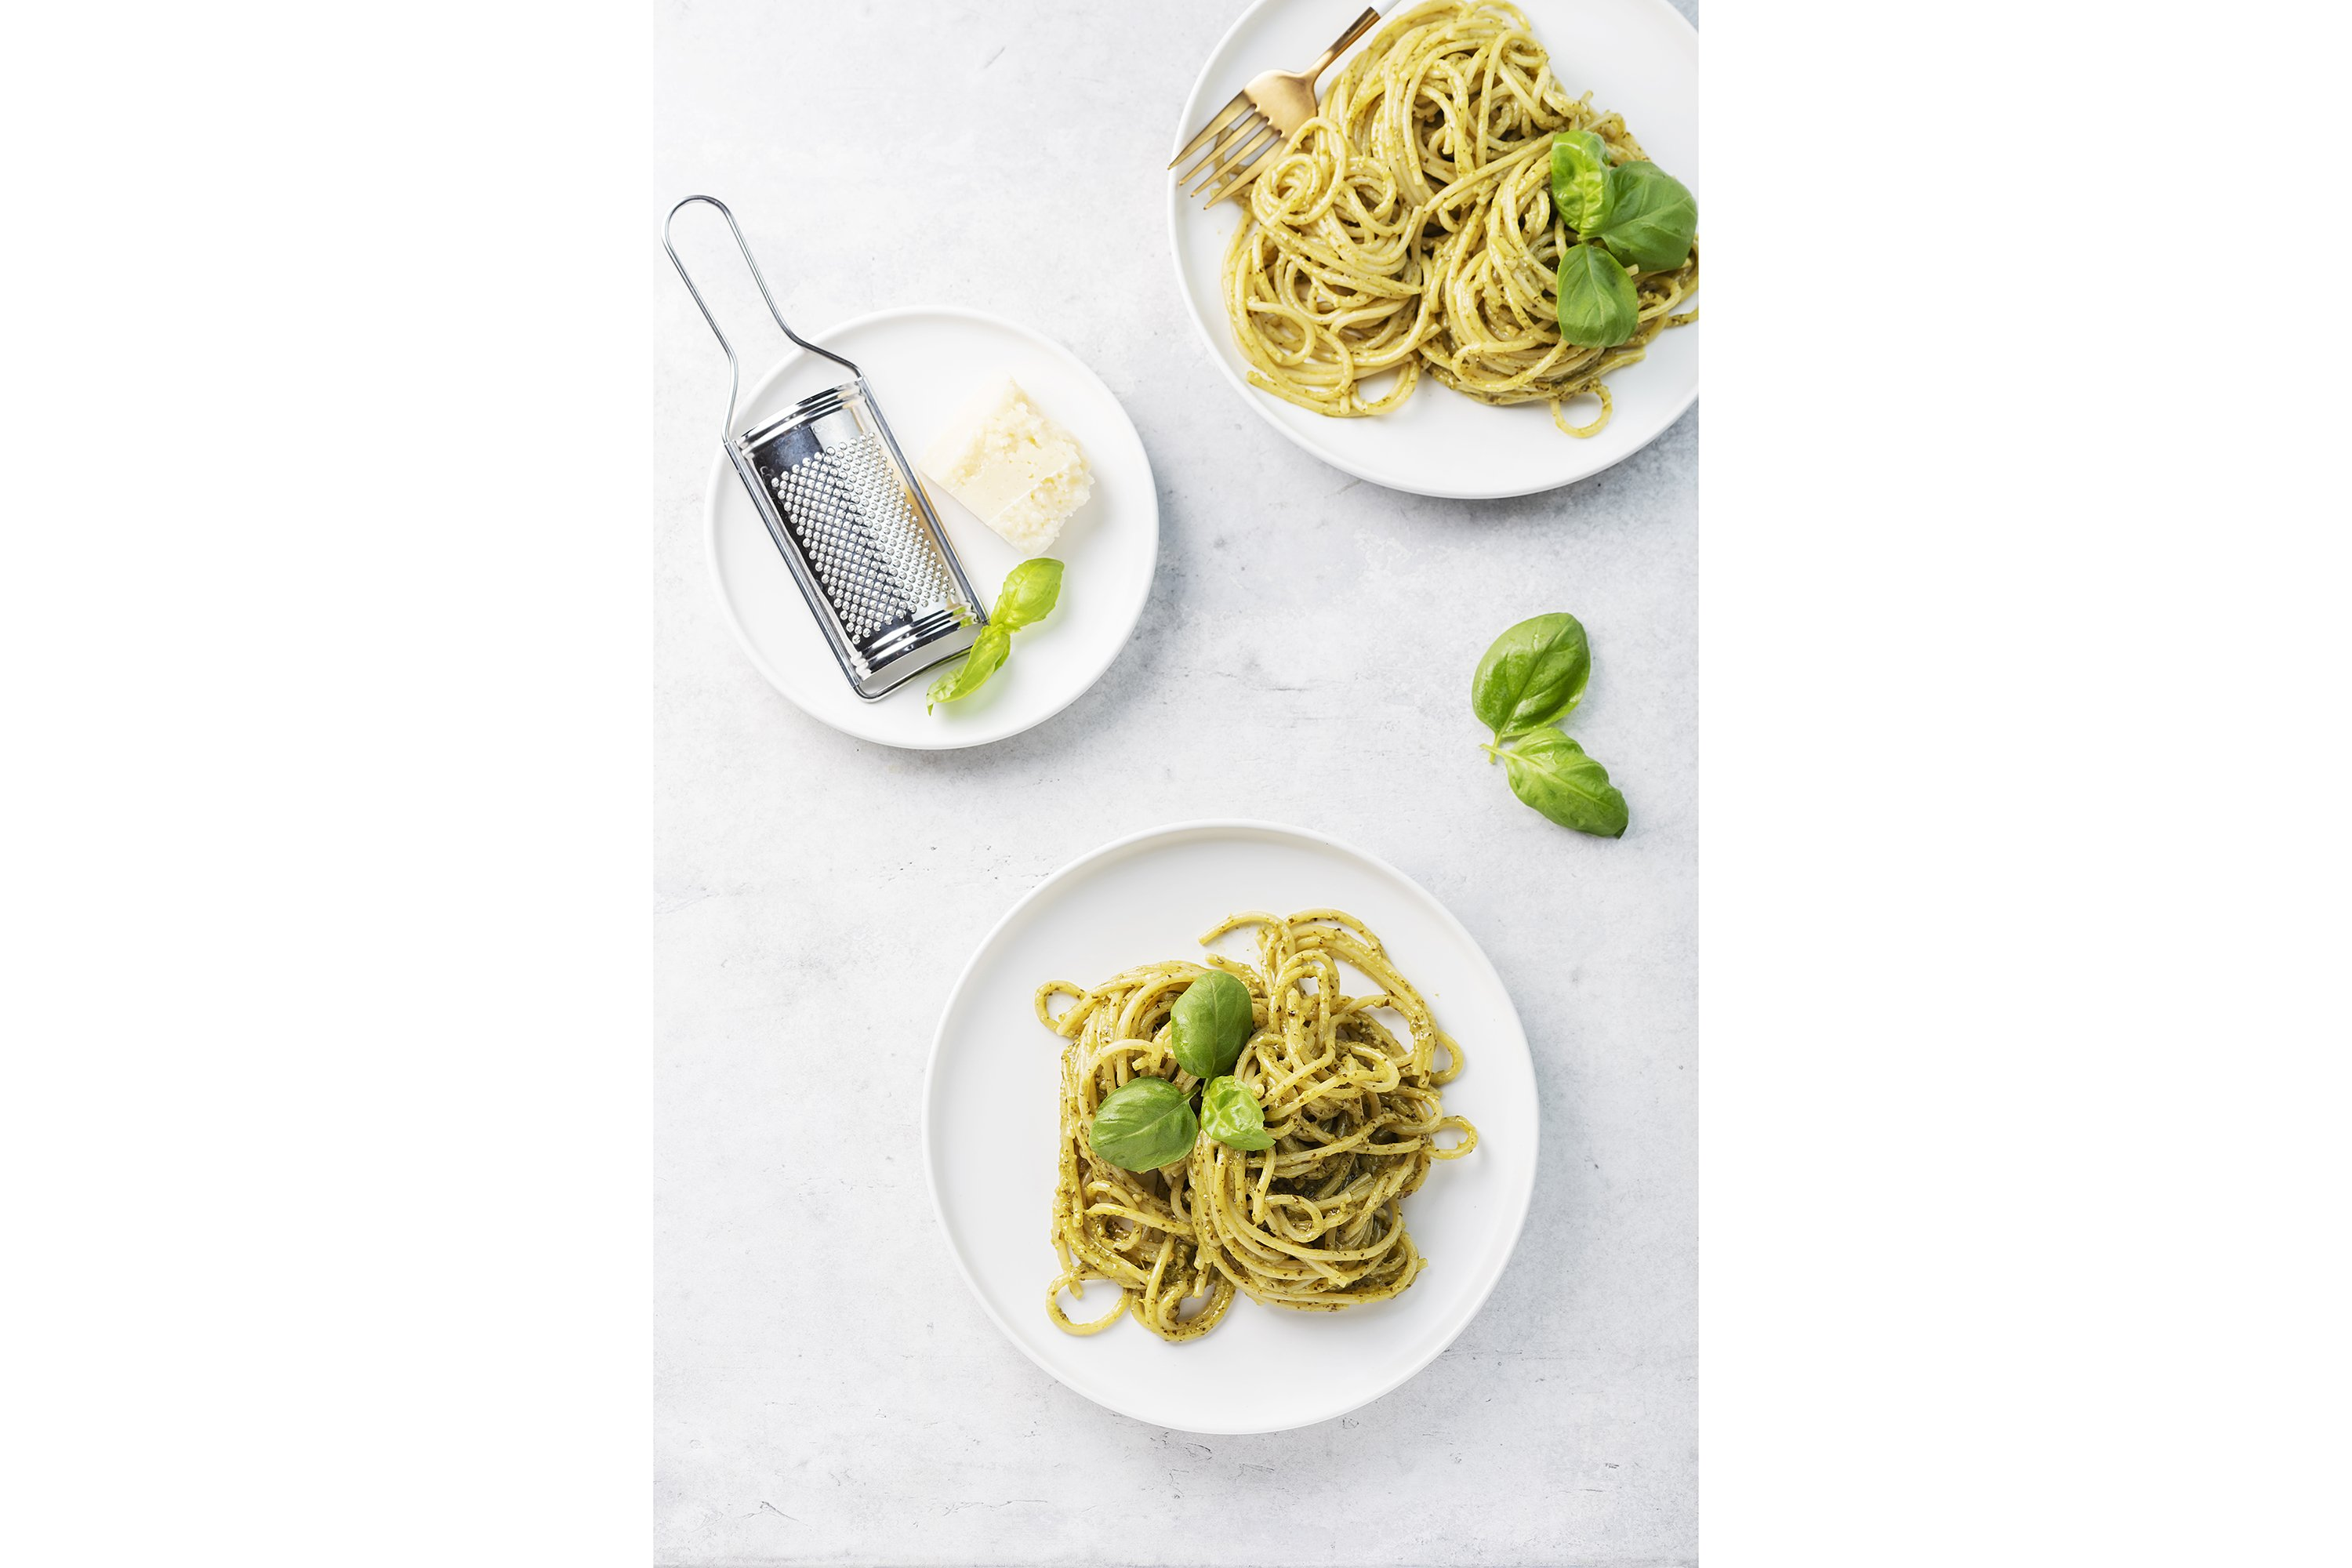 Italian spaghetti with pesto sause and parmesan cheese example image 1